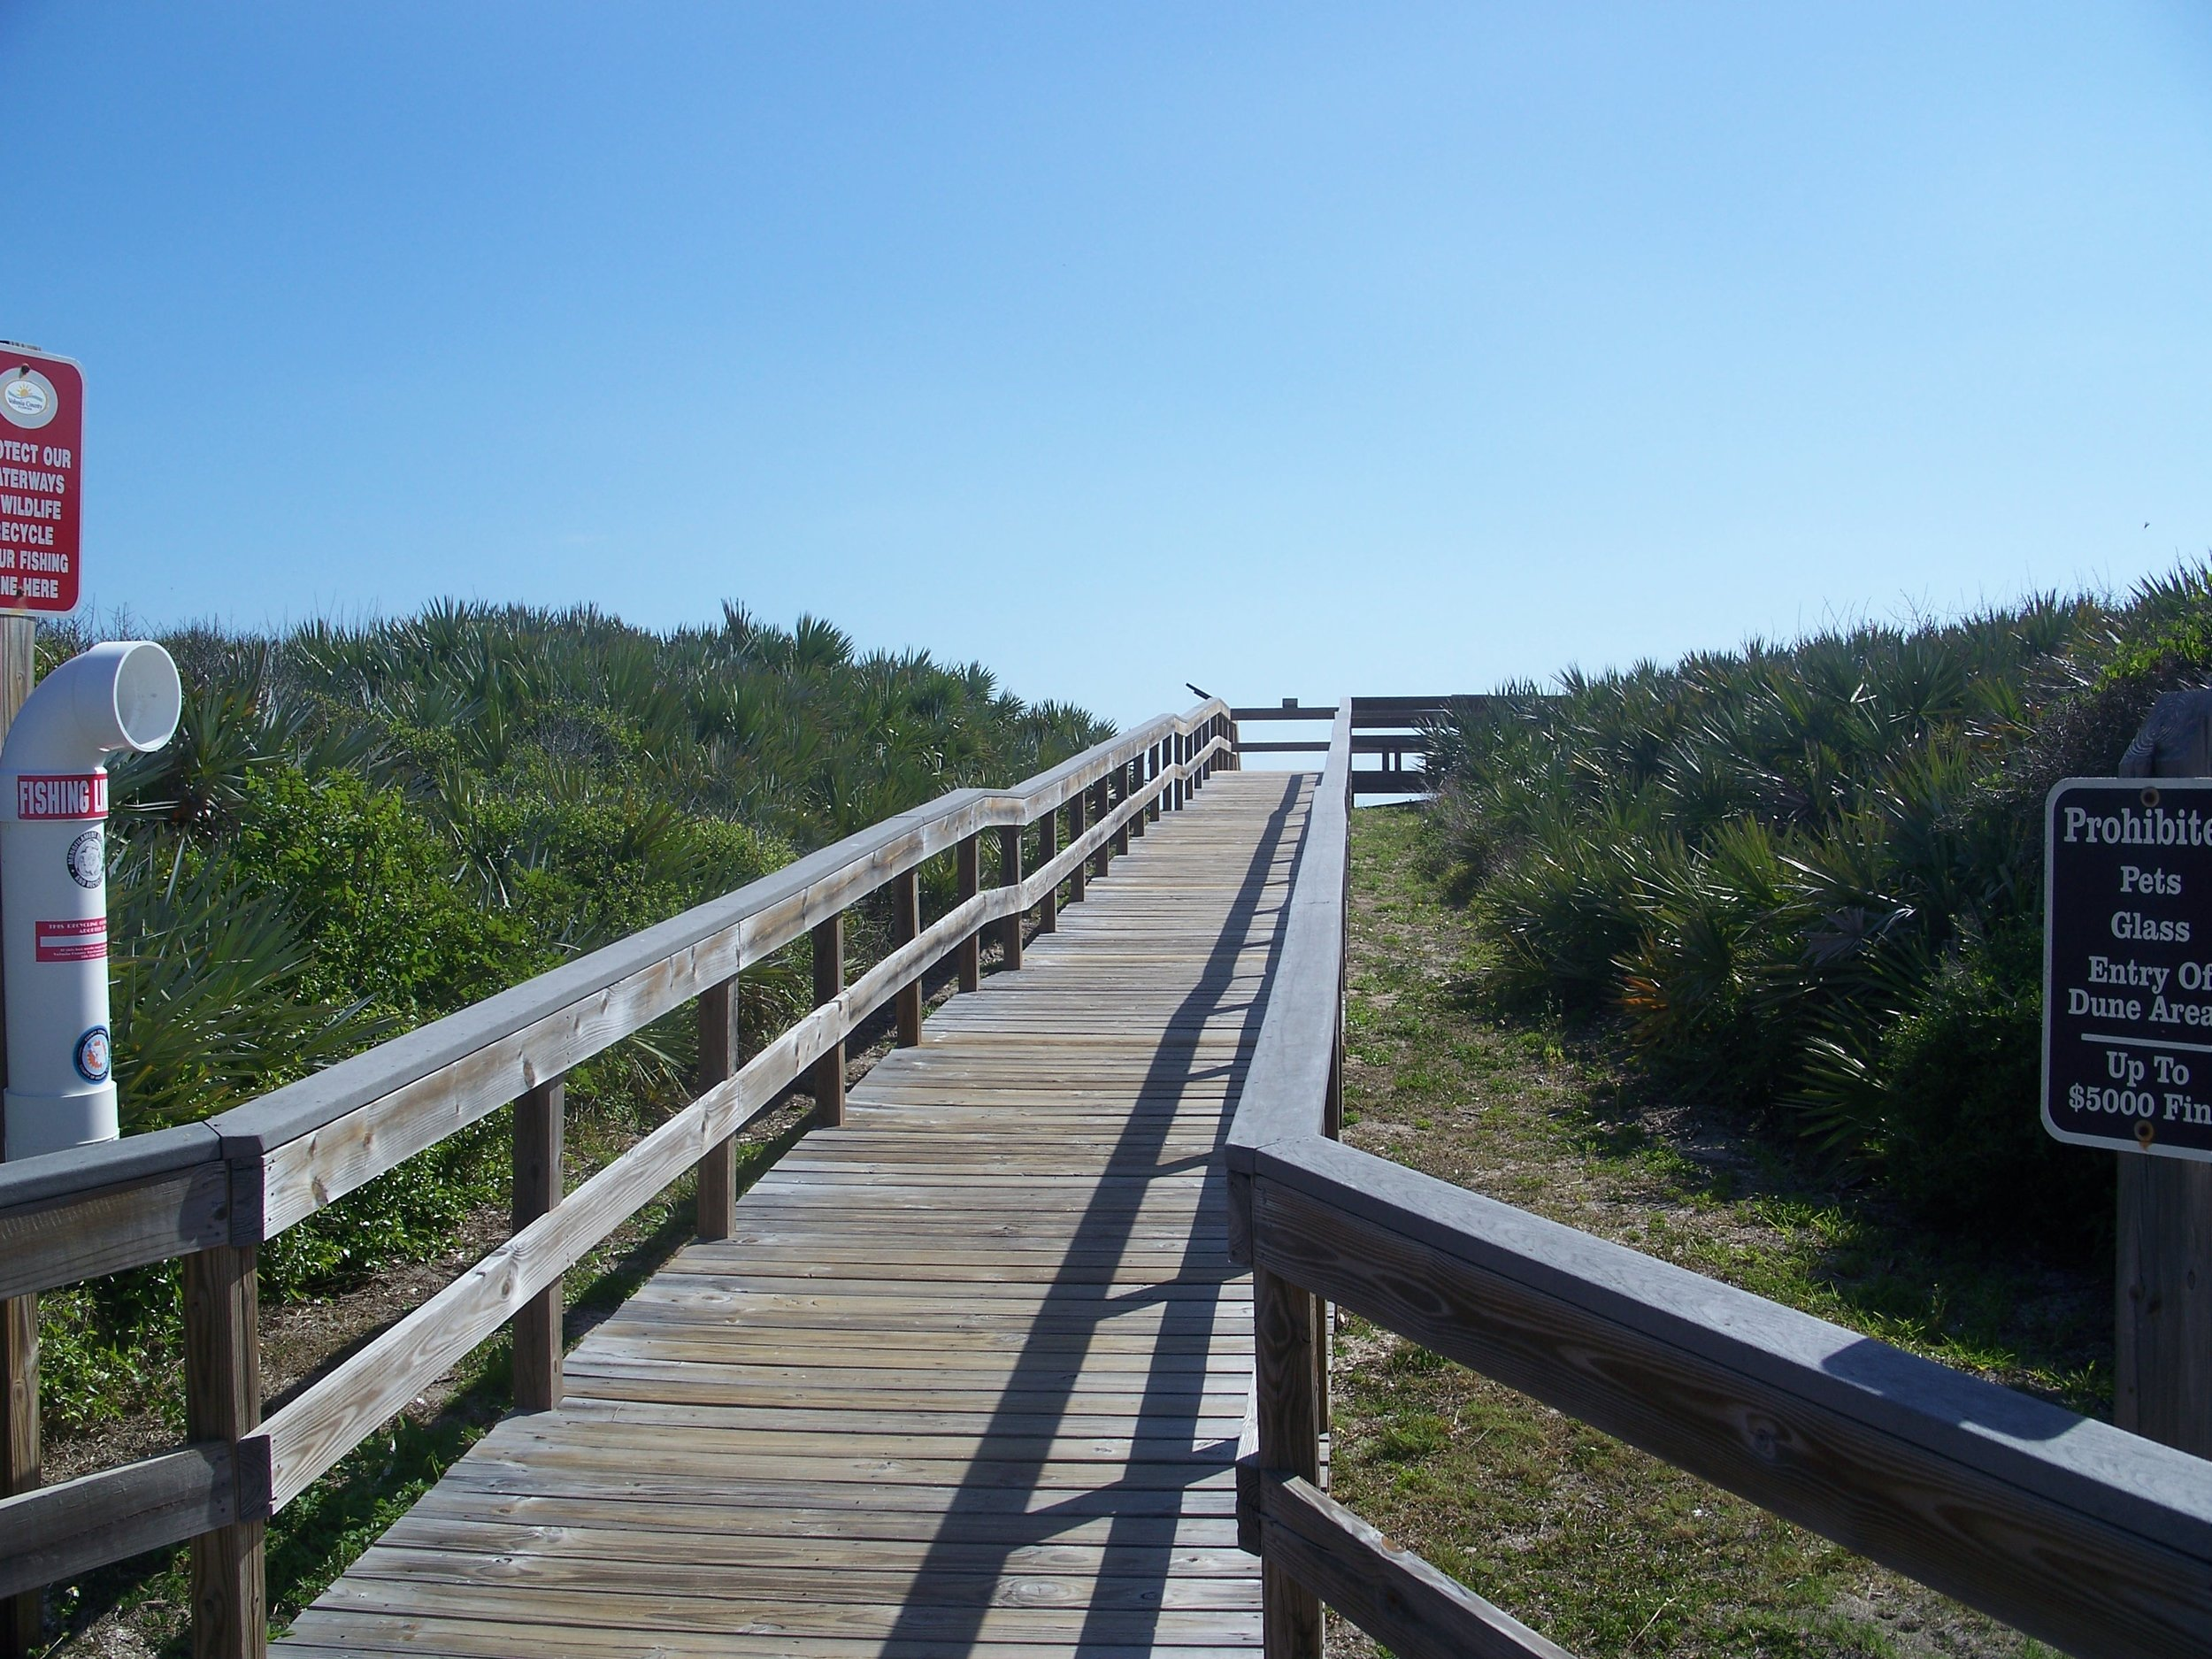 CNS_Apollo_Beach_boardwalk01.jpg